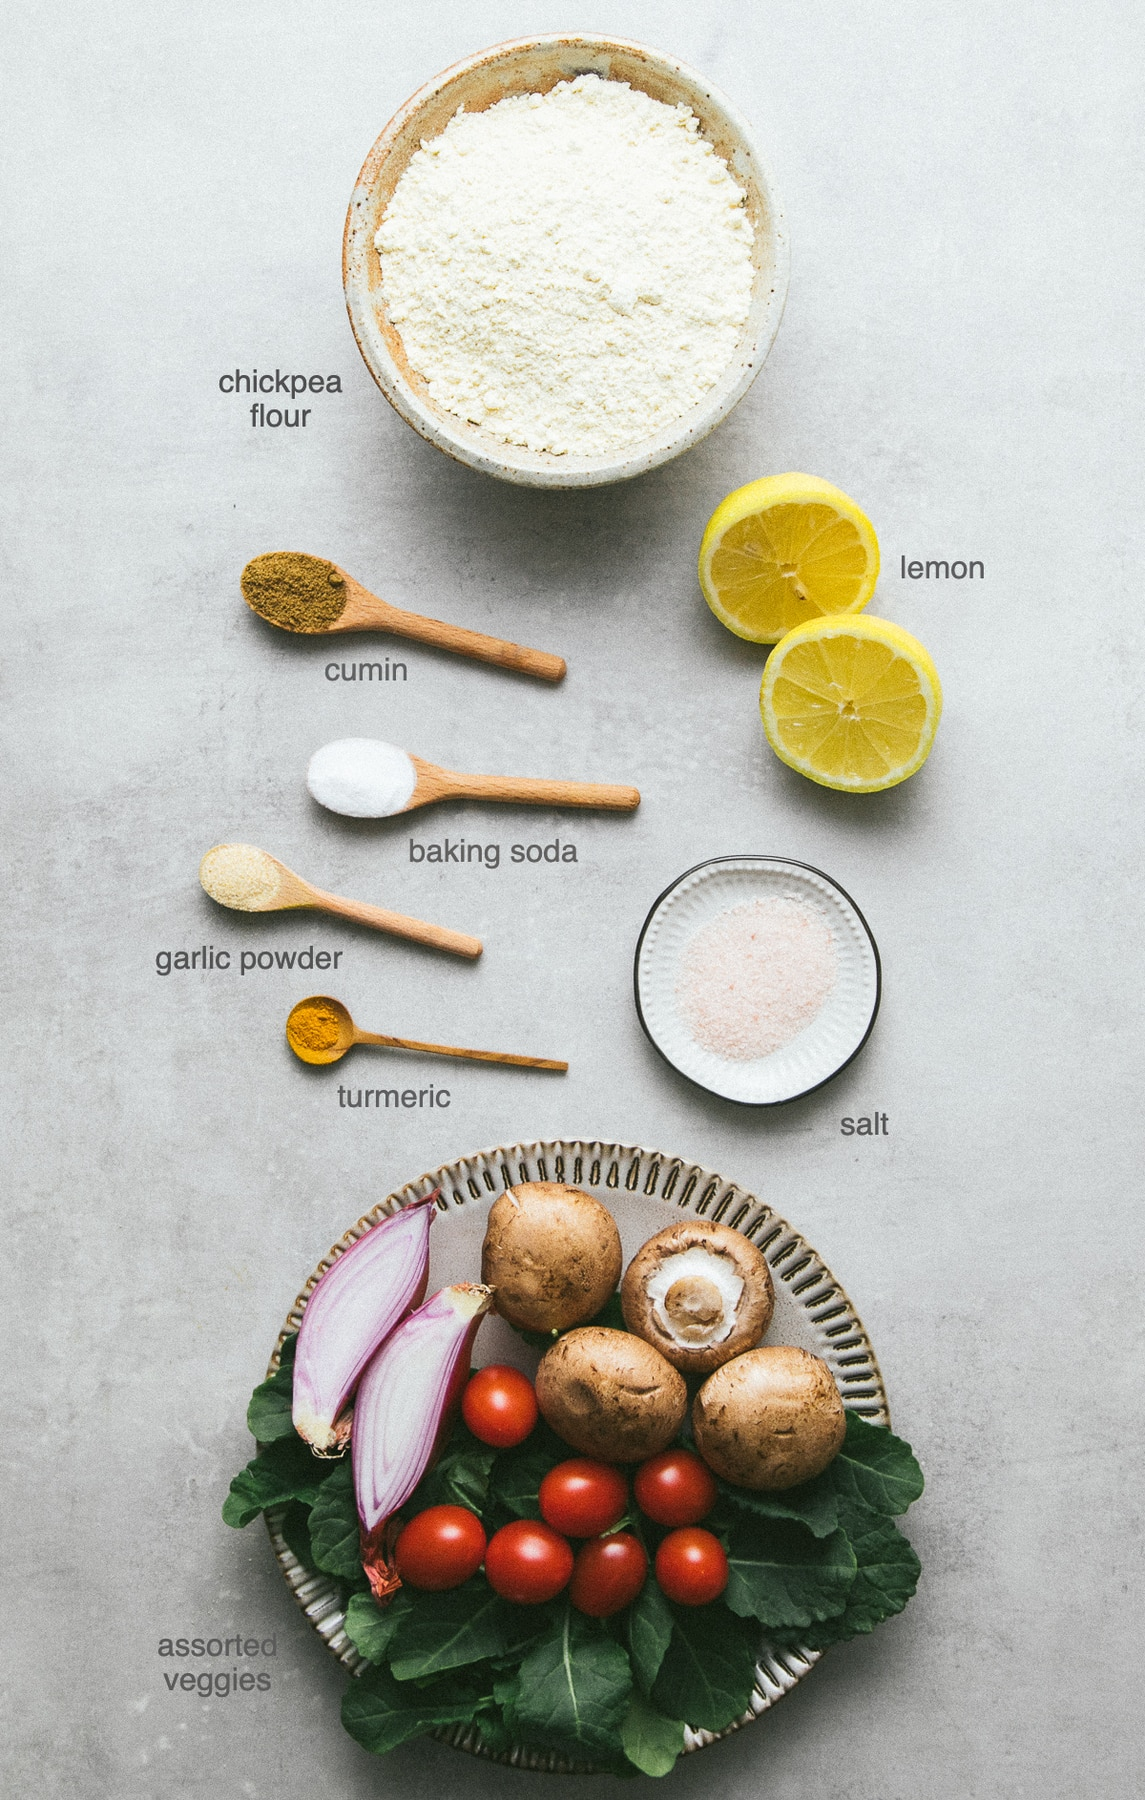 top down view of ingredients used to make savory chickpea flour pancakes.